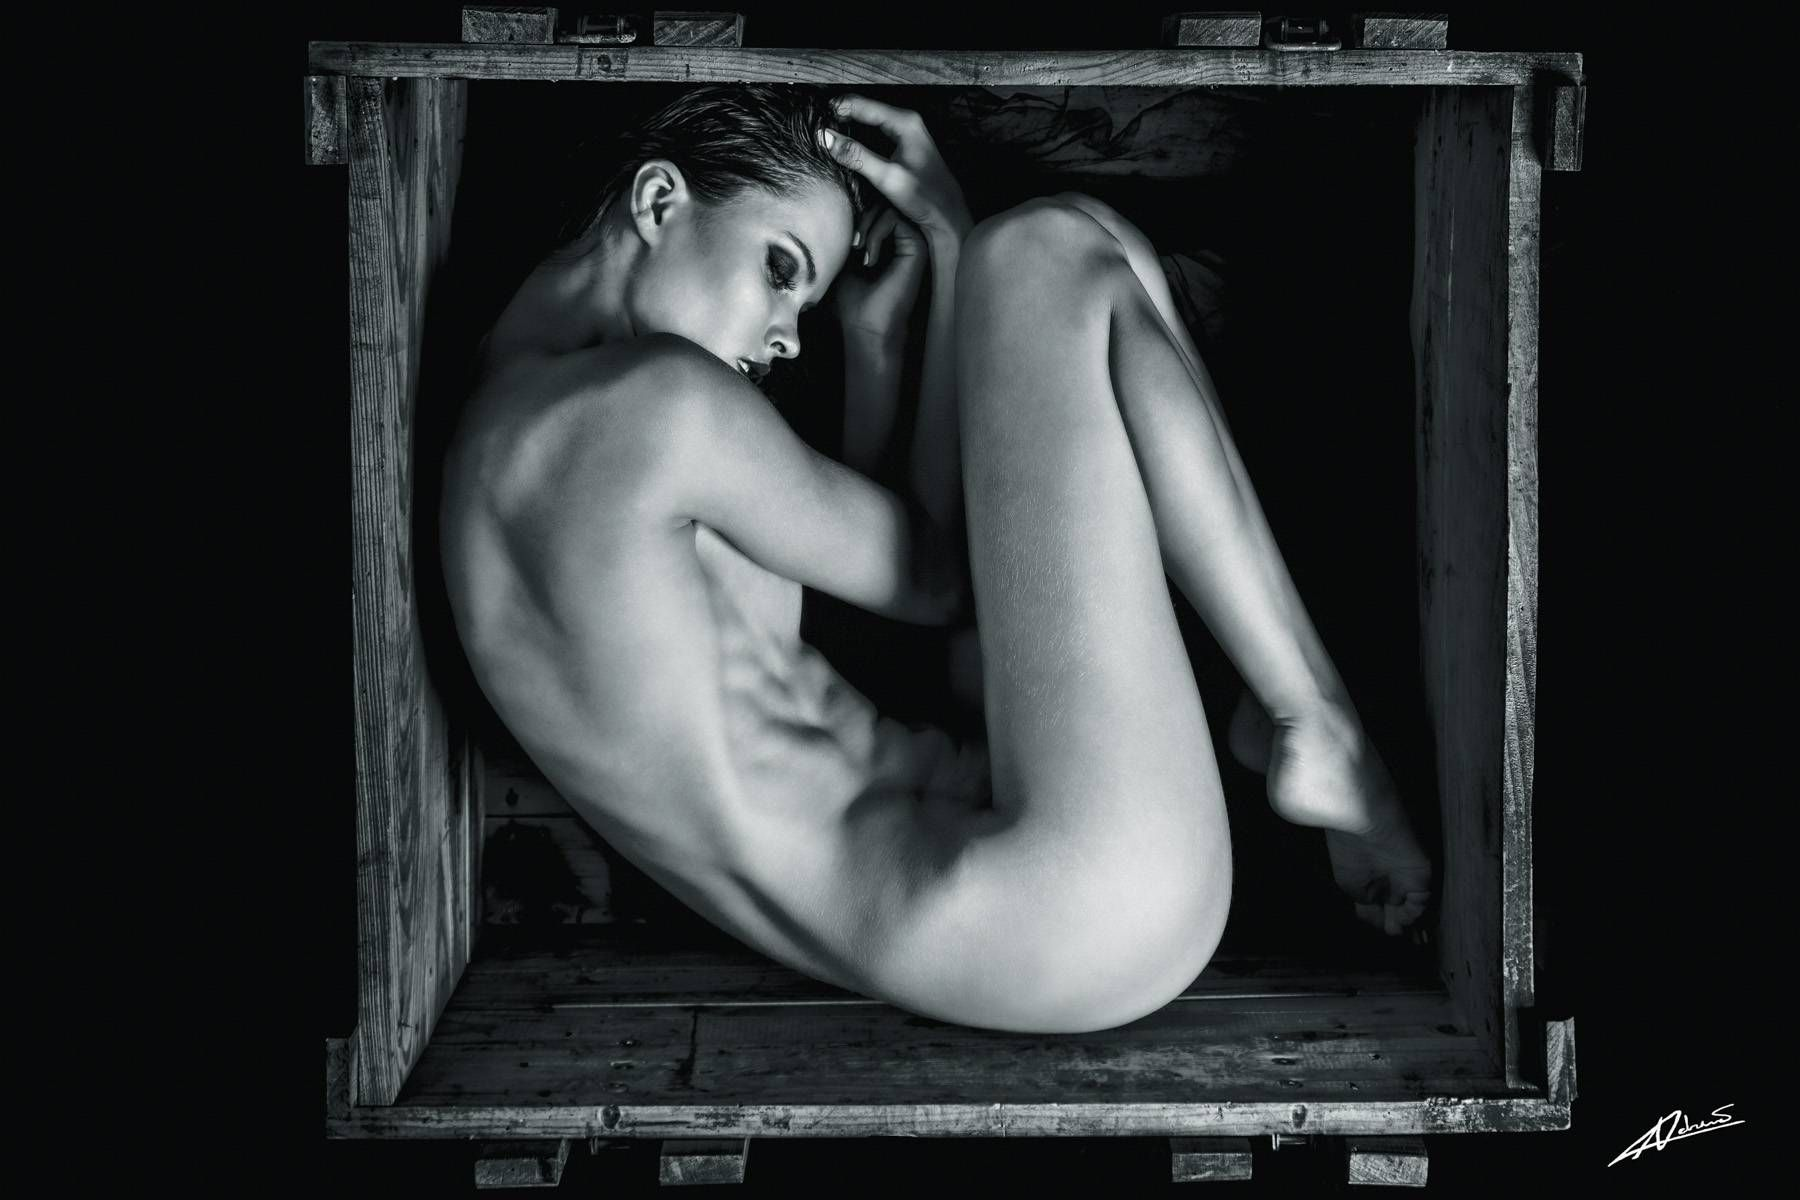 Fine Art Nude Photography Guide For Beginners